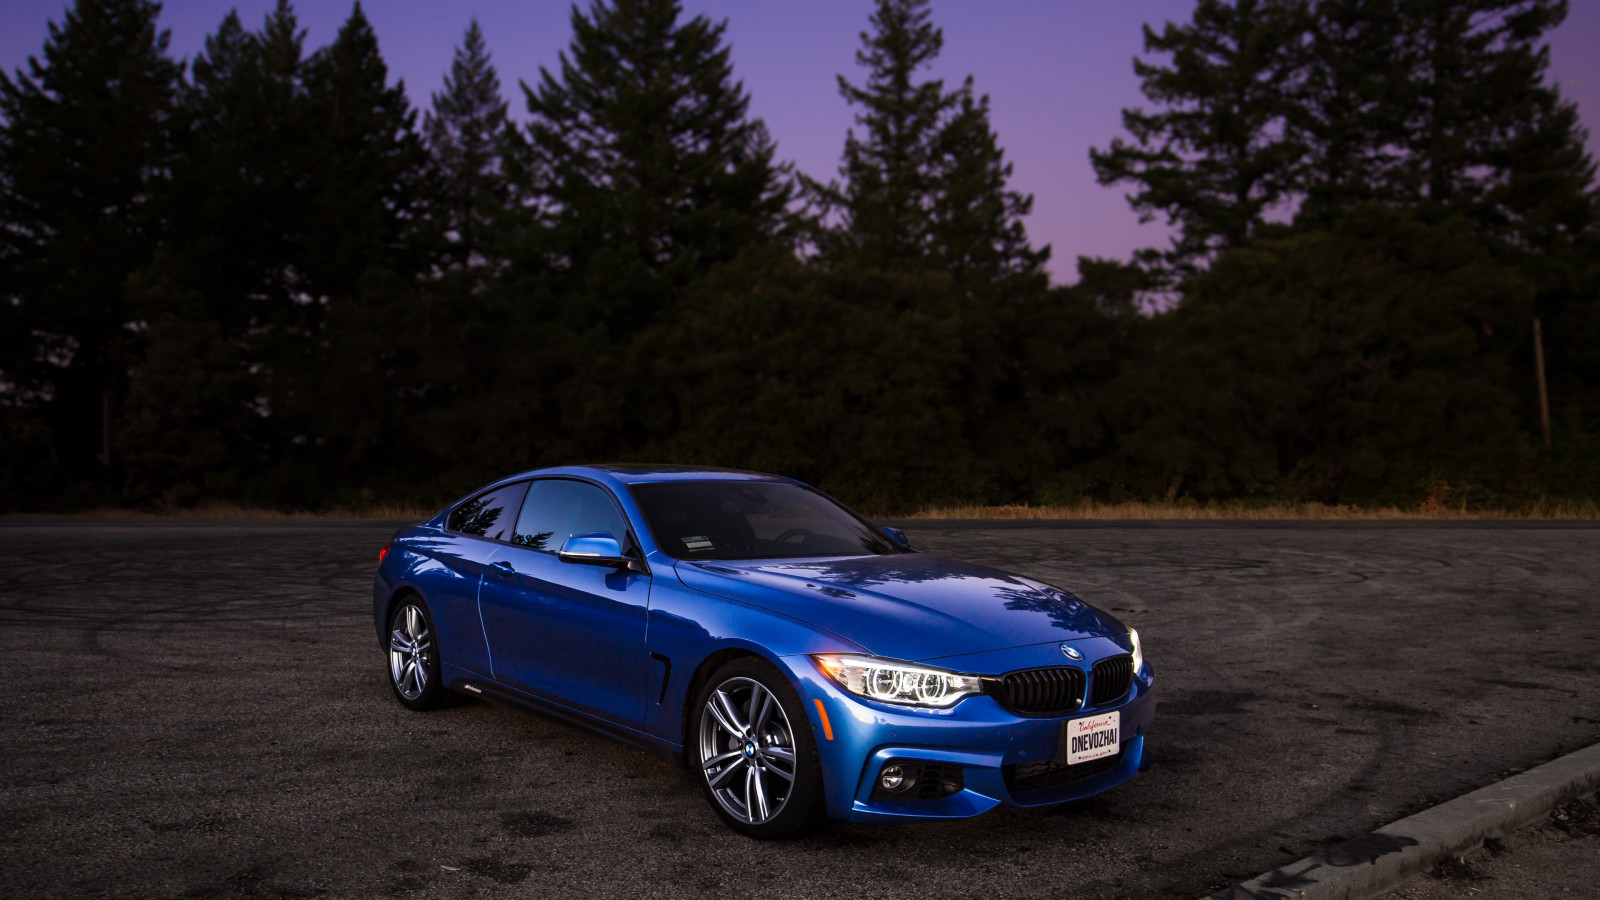 BMW 440i M wallpaper 1600x900